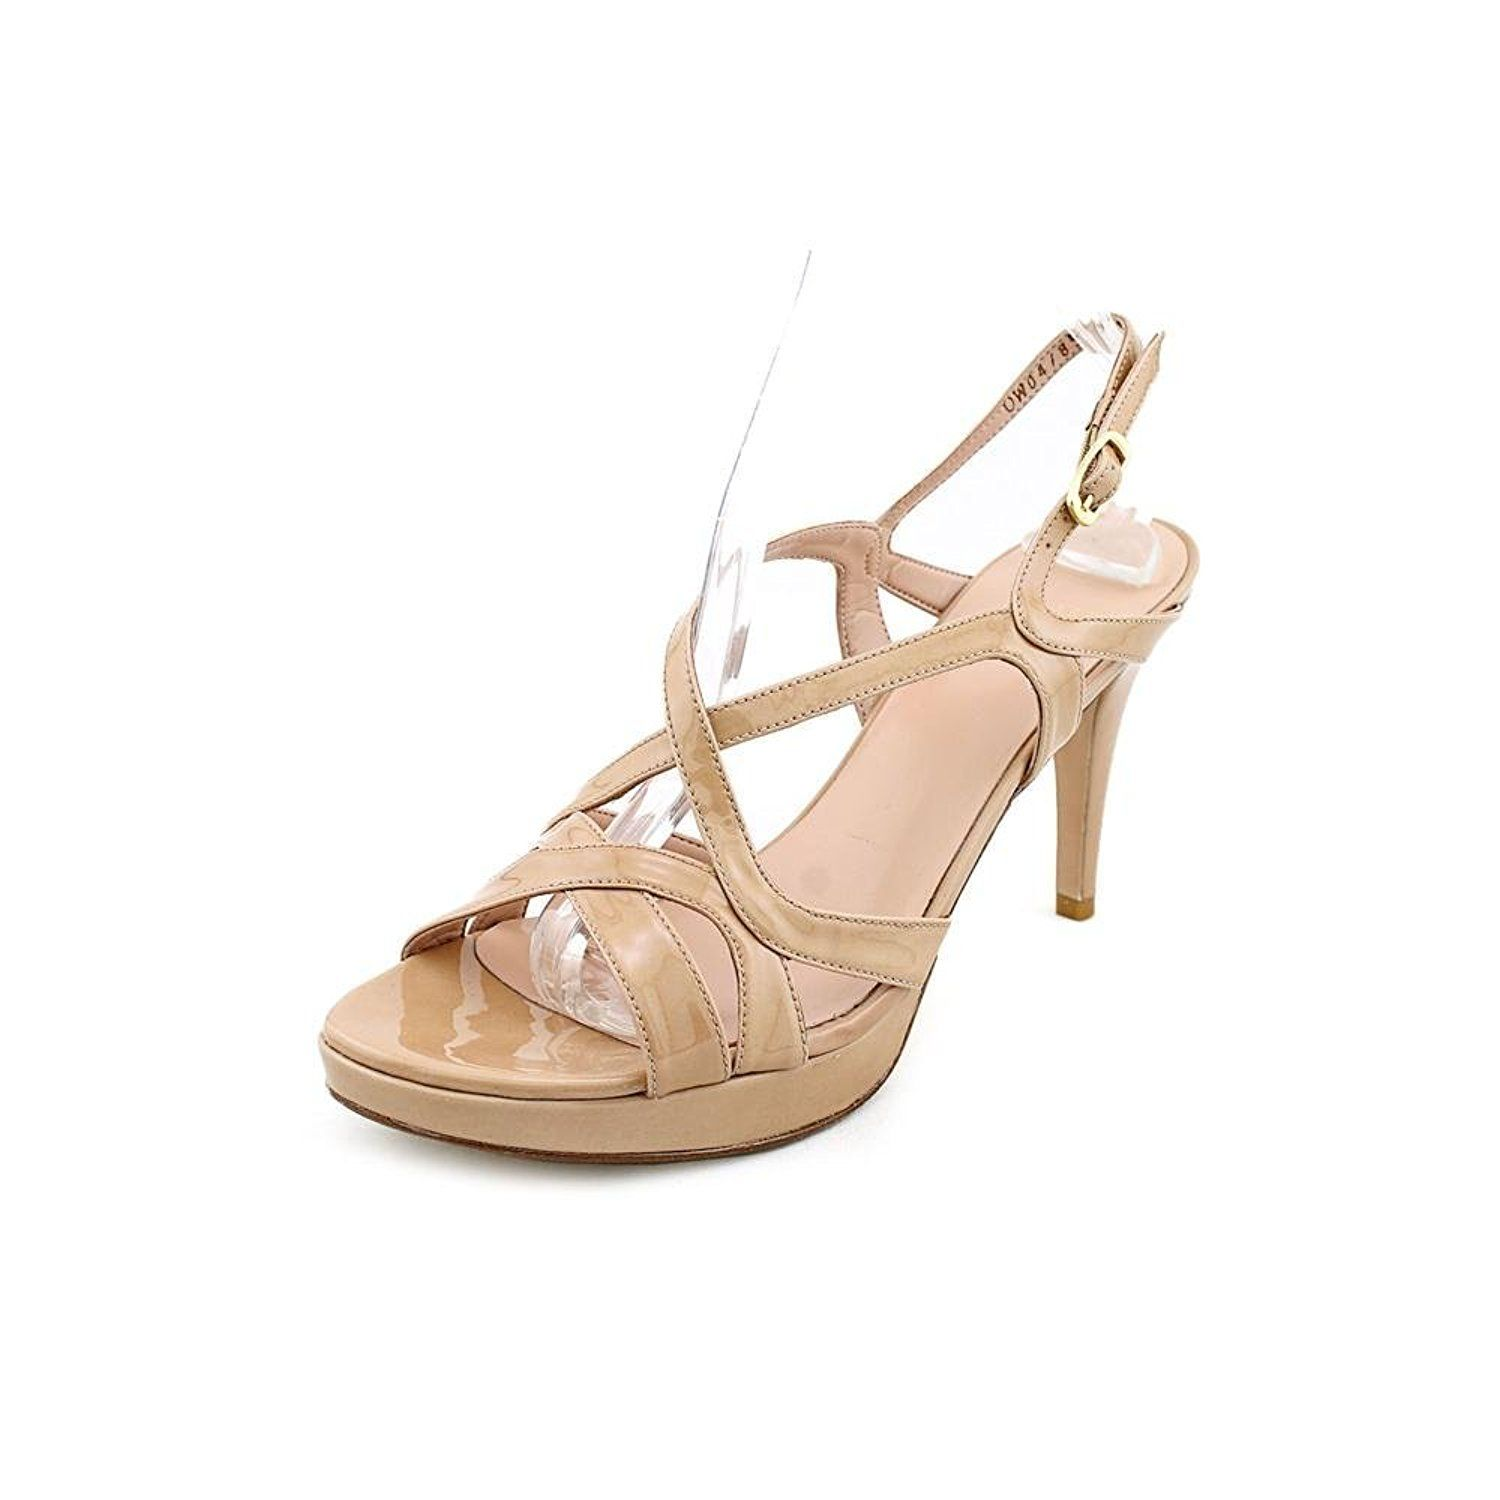 ca1e384d43a Stuart Weitzman Axis Platforms Women Open Toe Patent Leather Platform Heel     For more information